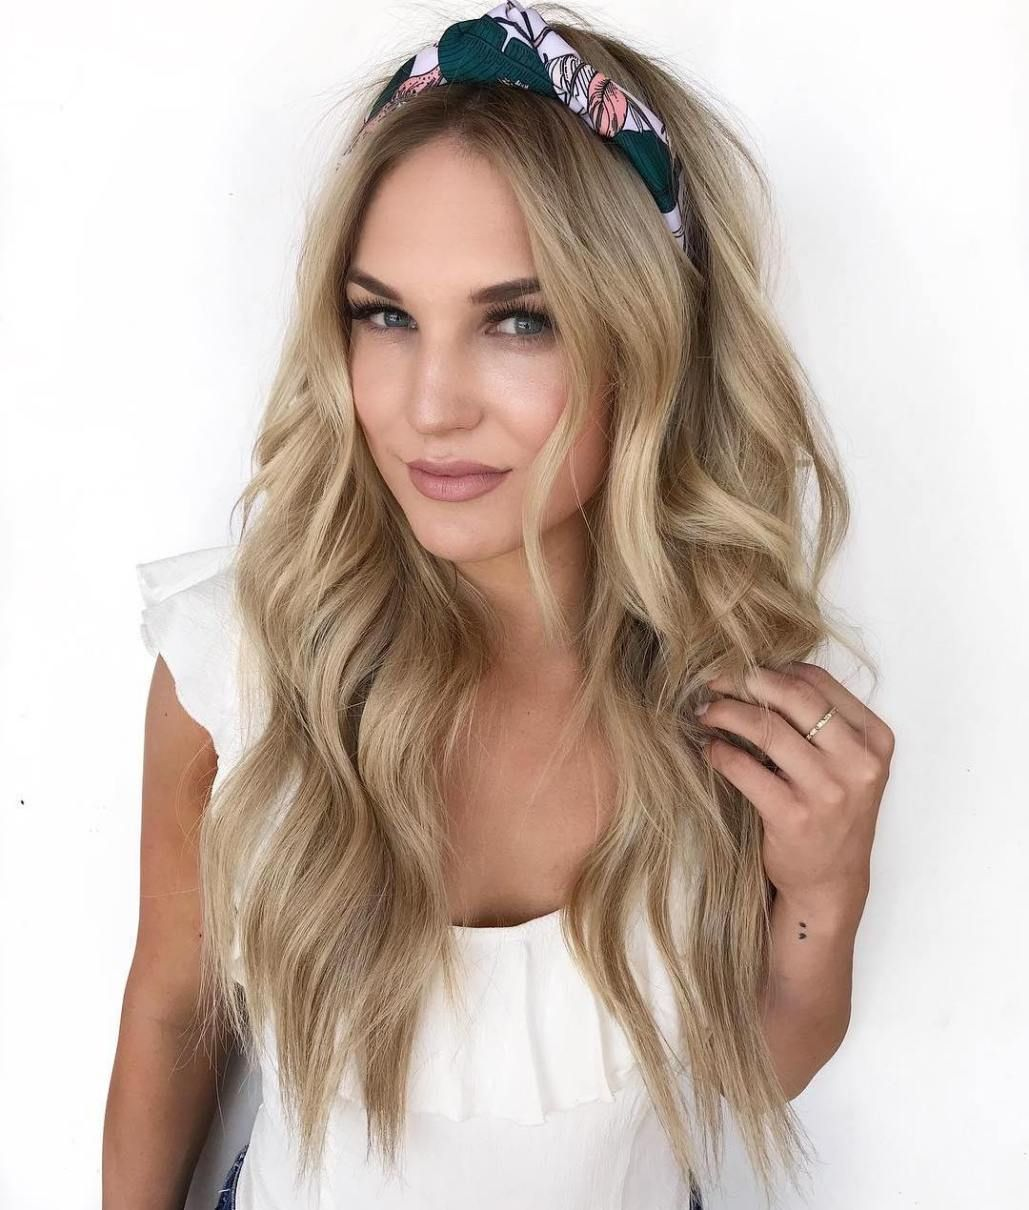 Best Hairstyles And Haircuts For Heart Shaped Faces Hair Styles Headband Hairstyles Cool Hairstyles